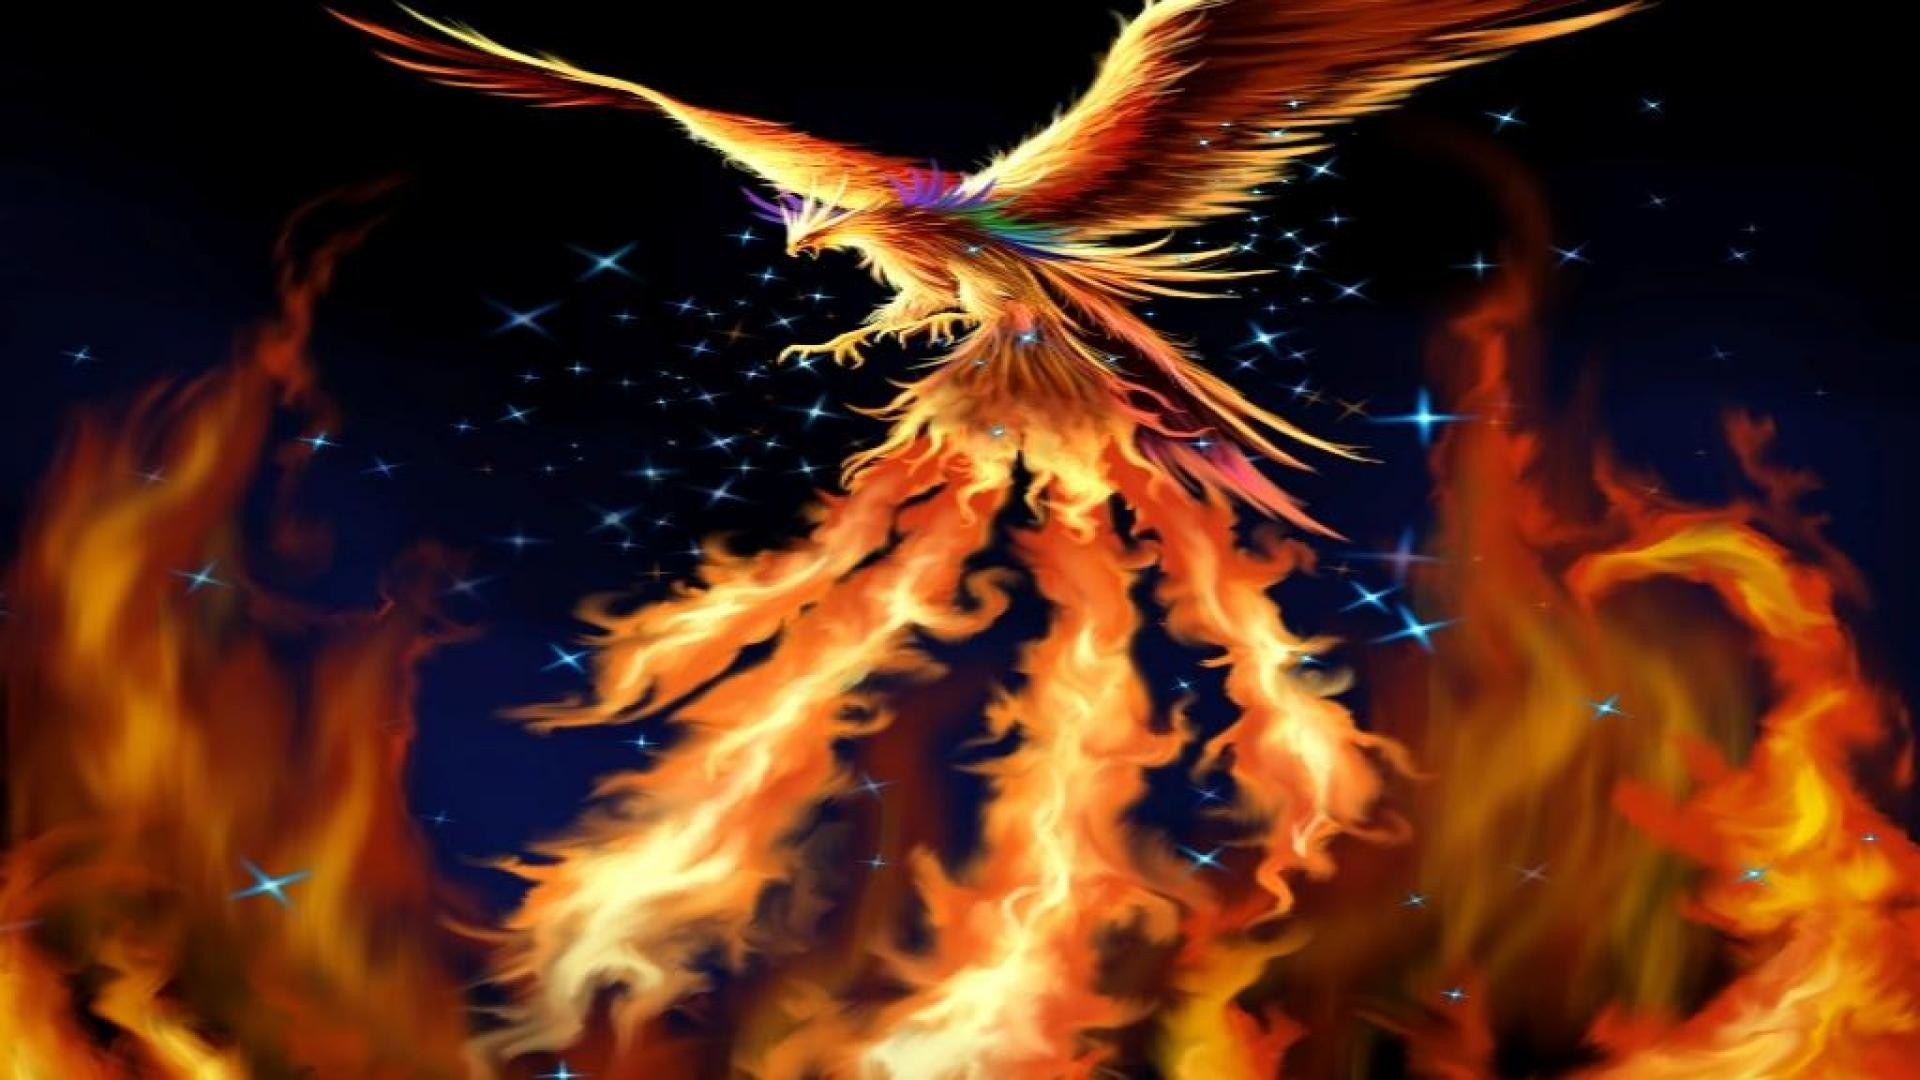 1920x1080 Fantasy-fire-bird-phoenix-wallpaper-HD